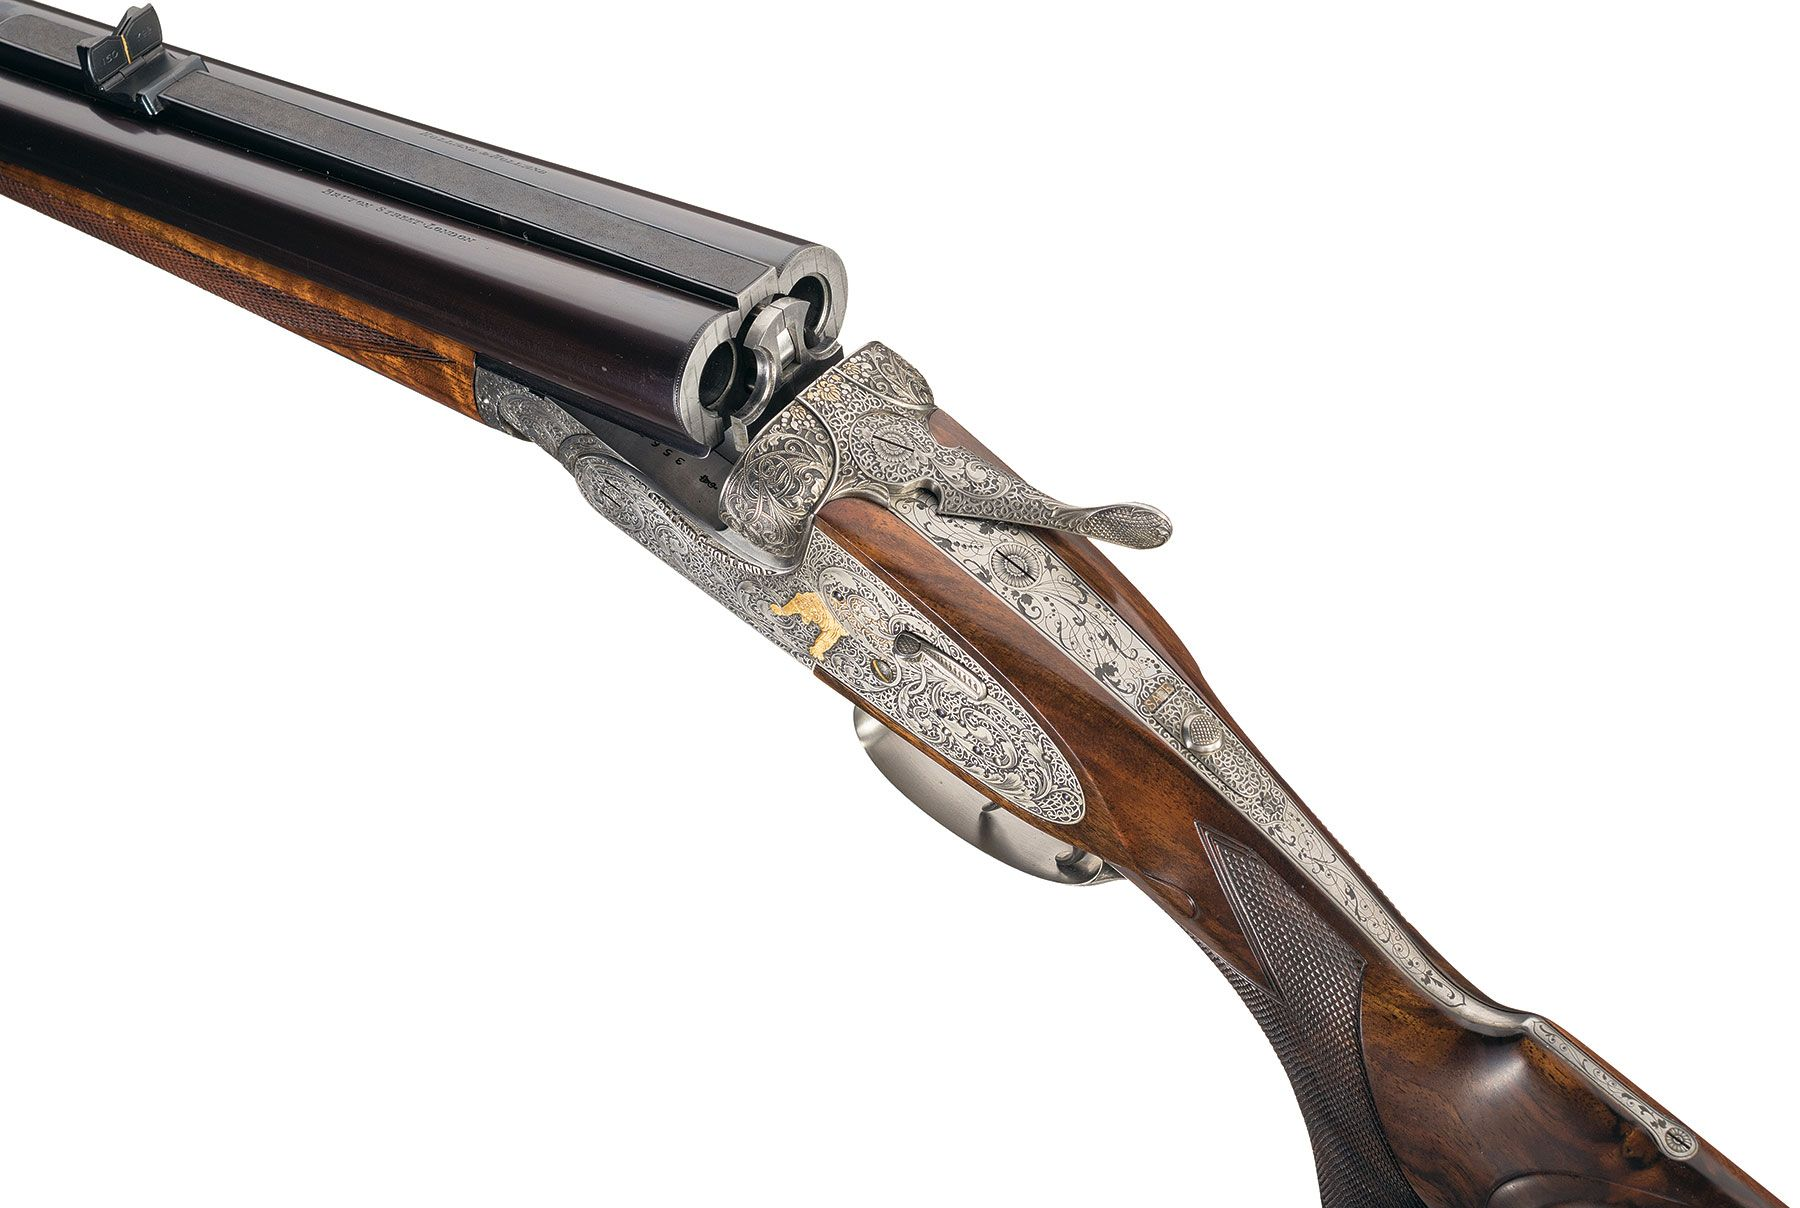 Holland & Holland 500-465 double rifle breech gape